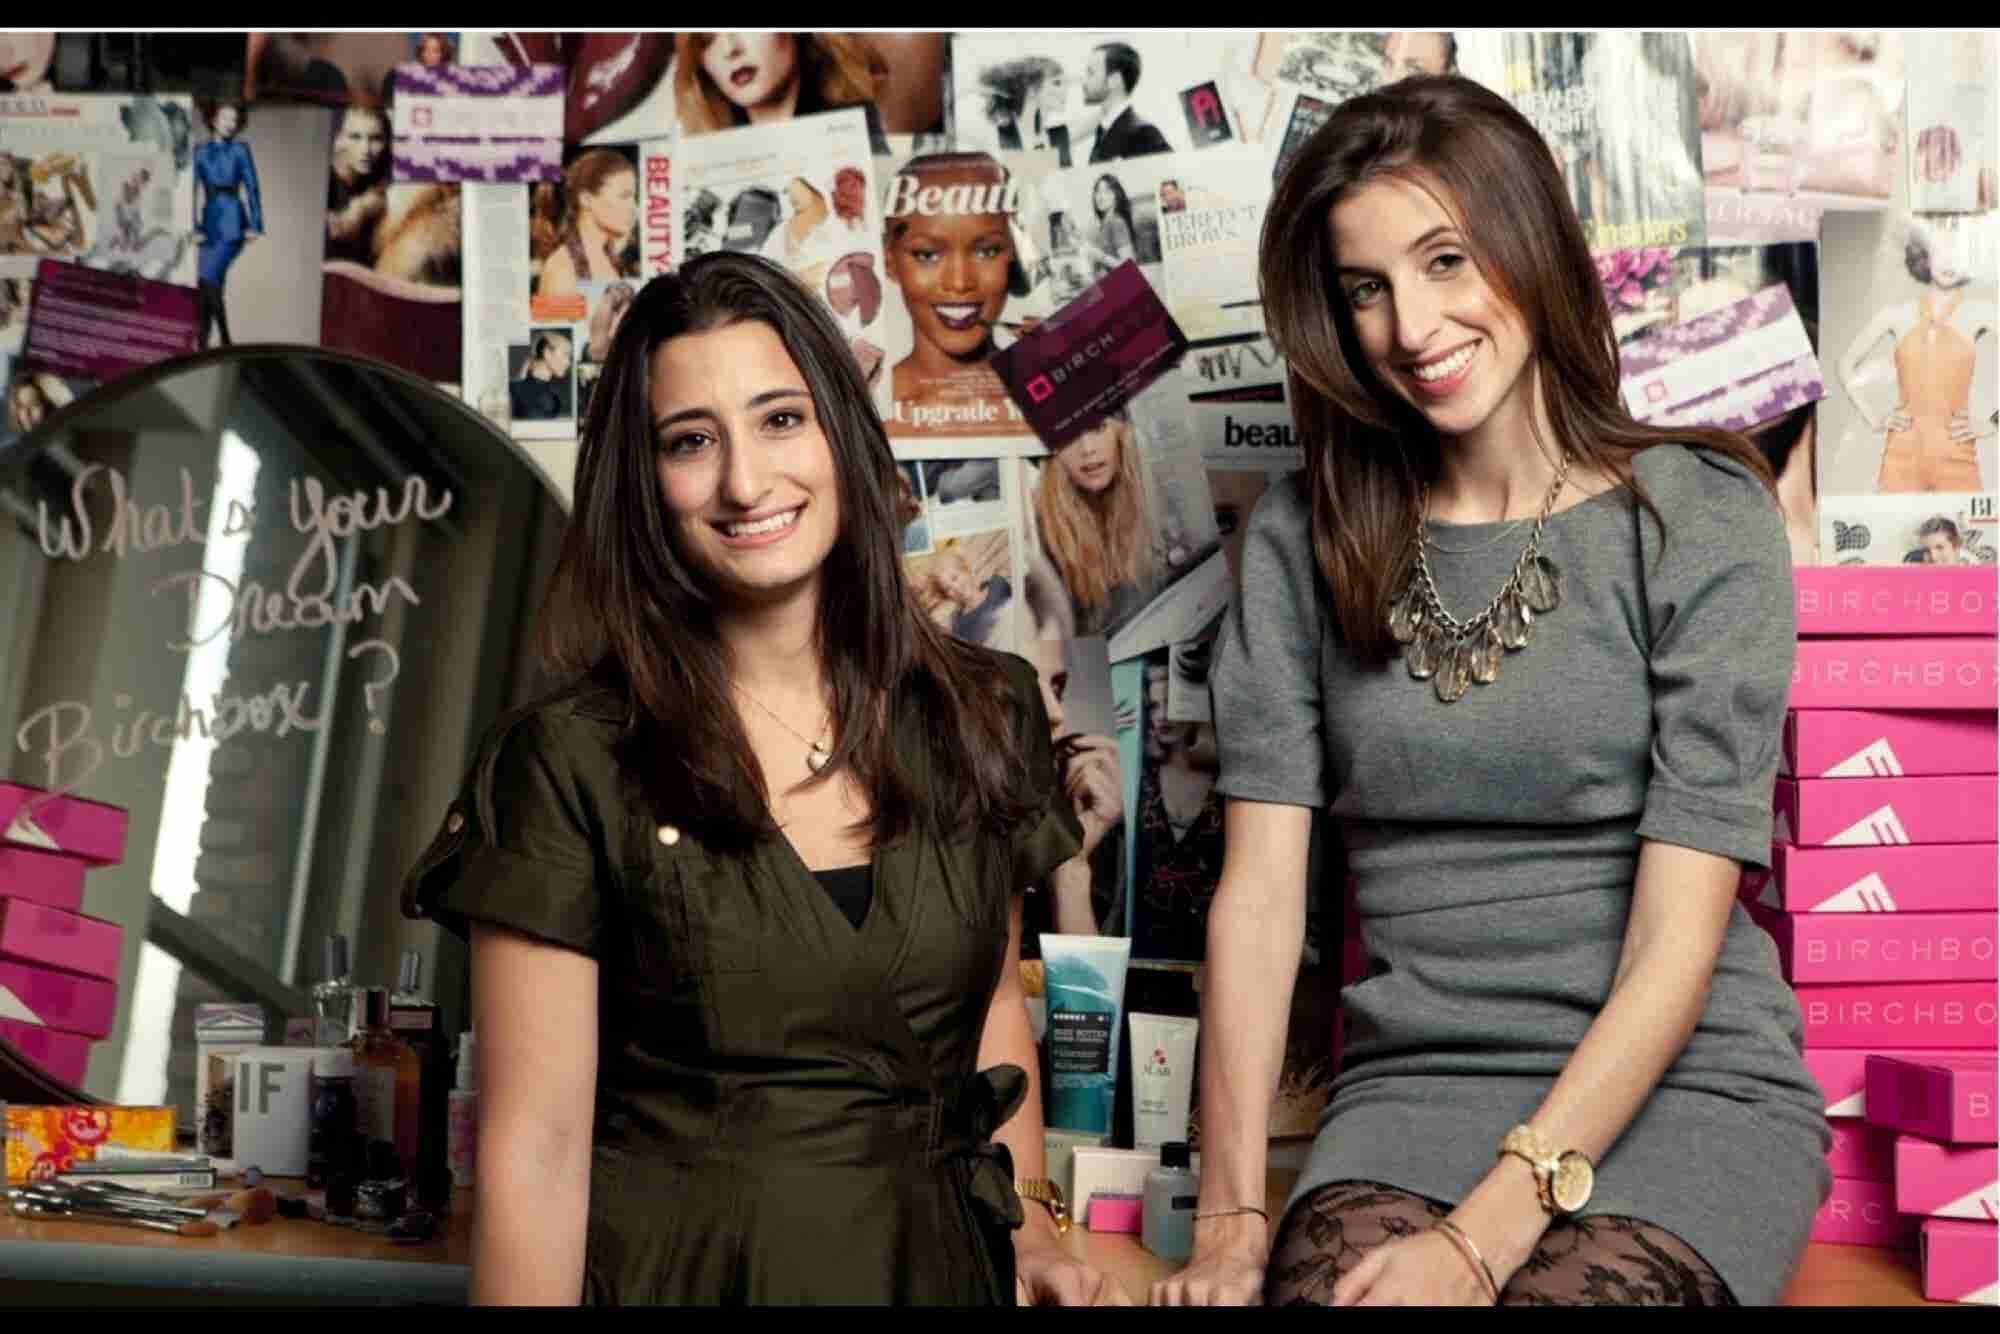 Hayley Barna Steps Down as Co-CEO of Birchbox